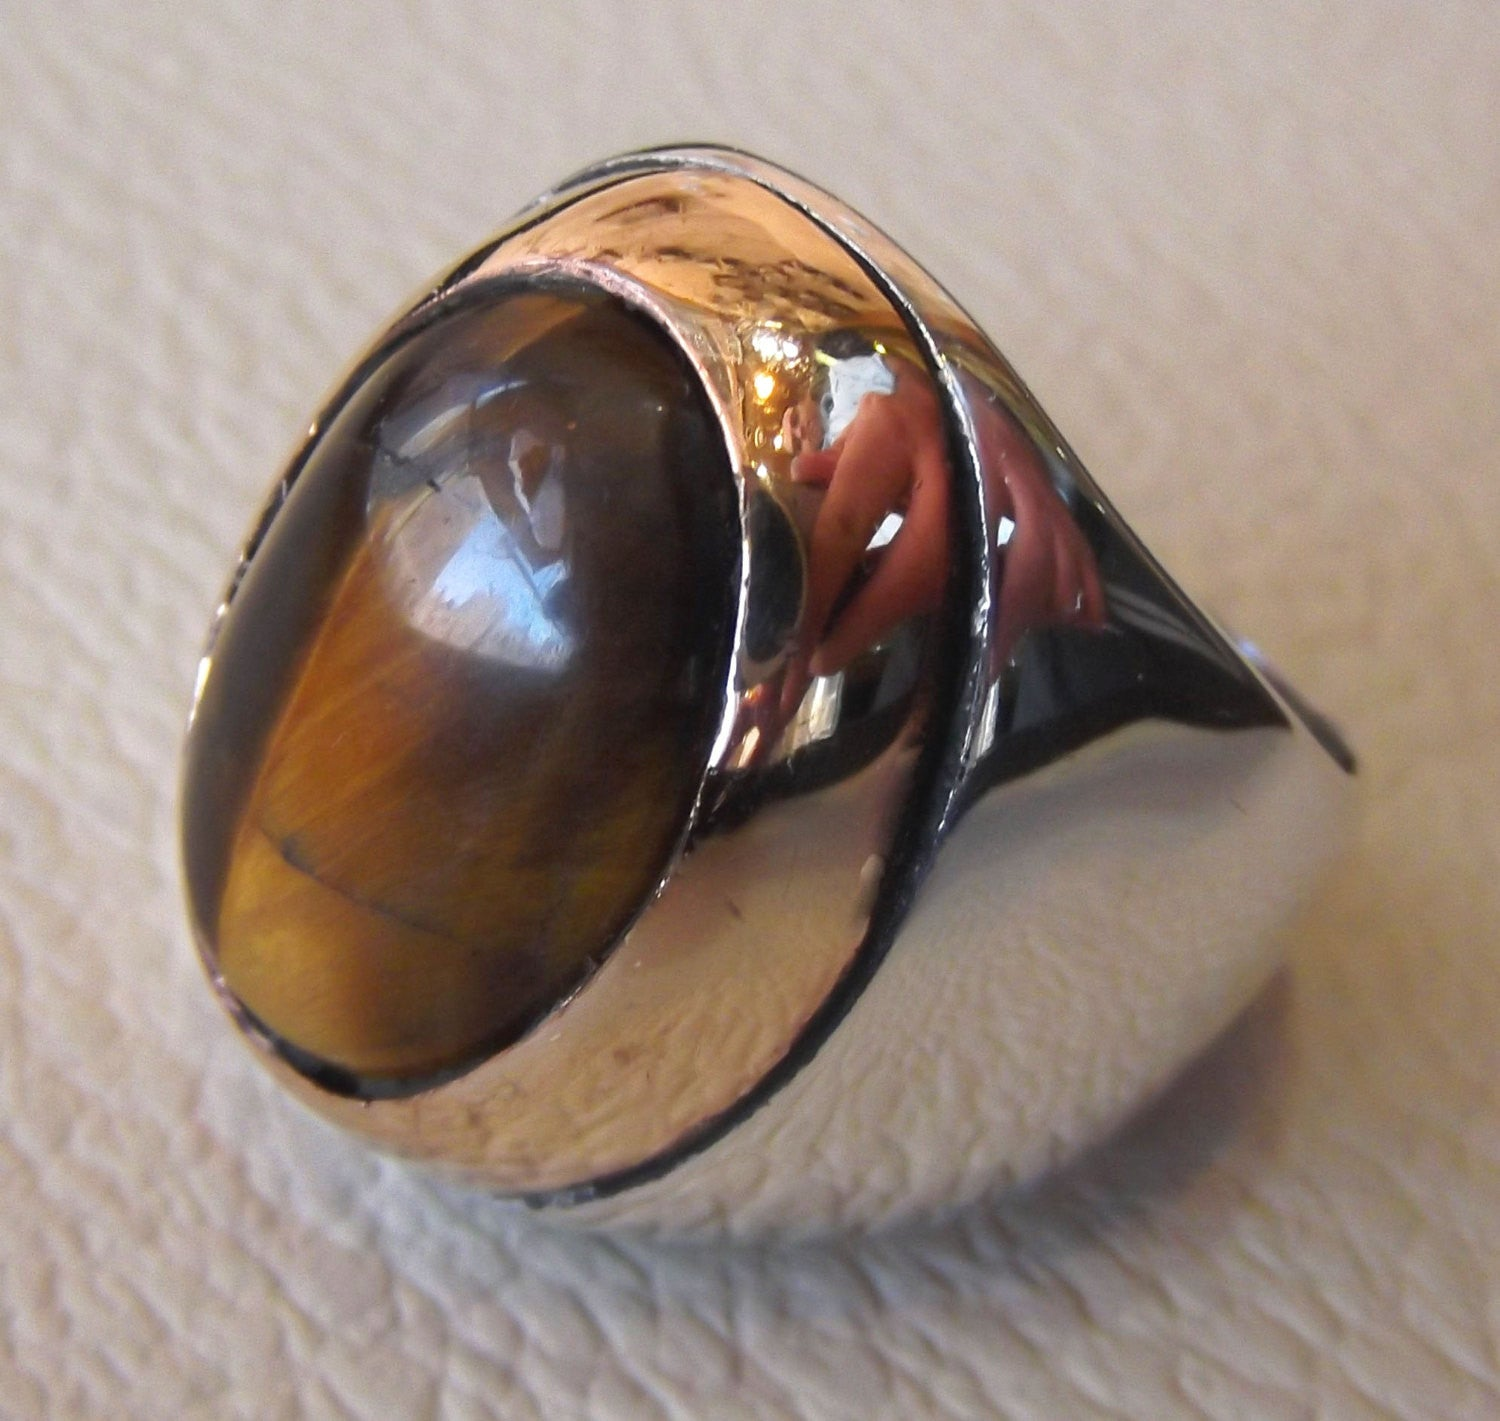 tiger eye big oval cabochon two tone men ring sterling silver 925 bronze frame cat eye semi precious natural stone all sizes jewelry